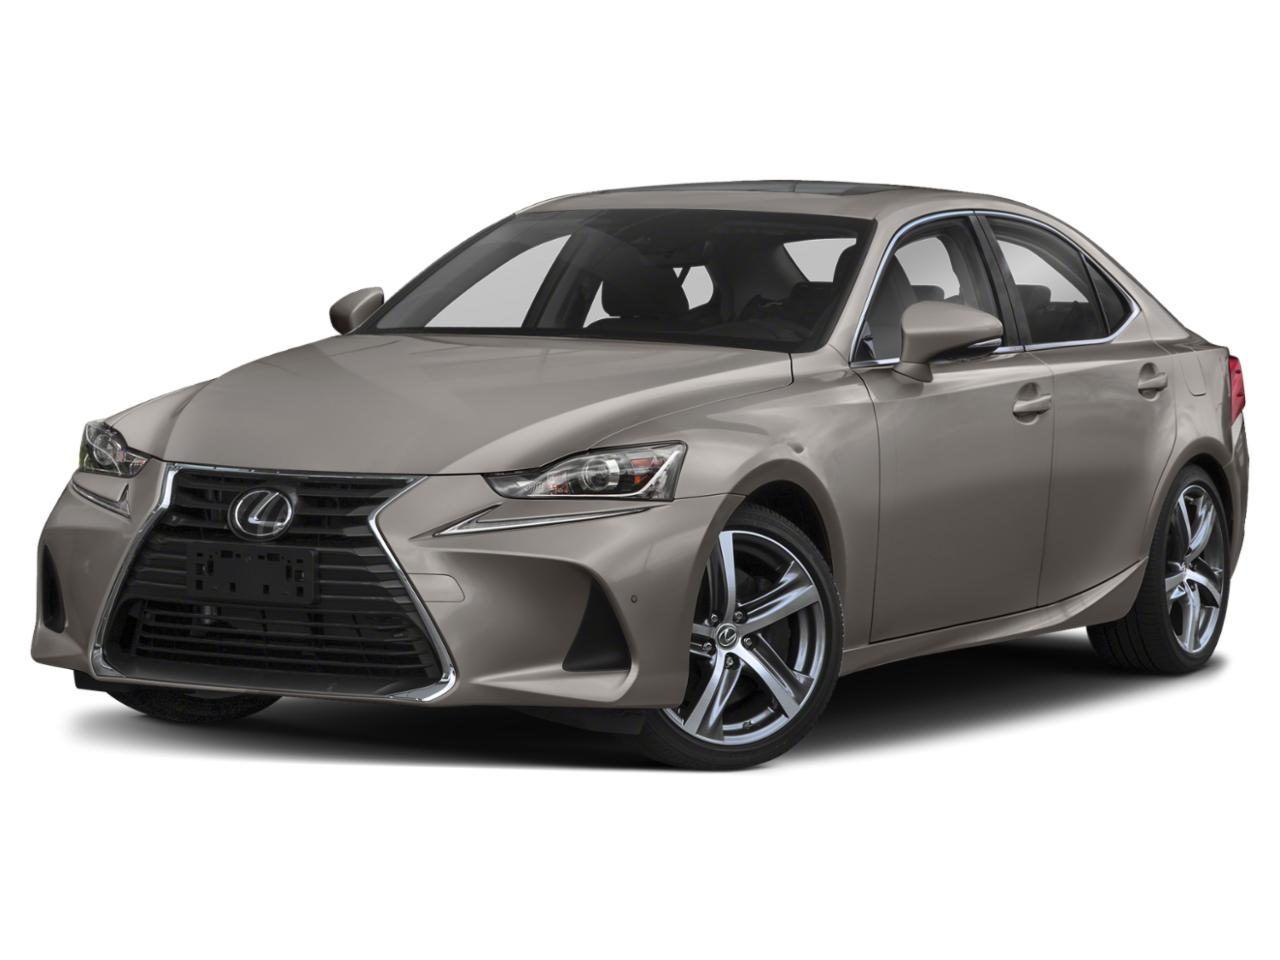 2020 Lexus IS 350 Vehicle Photo in Dallas, TX 75235